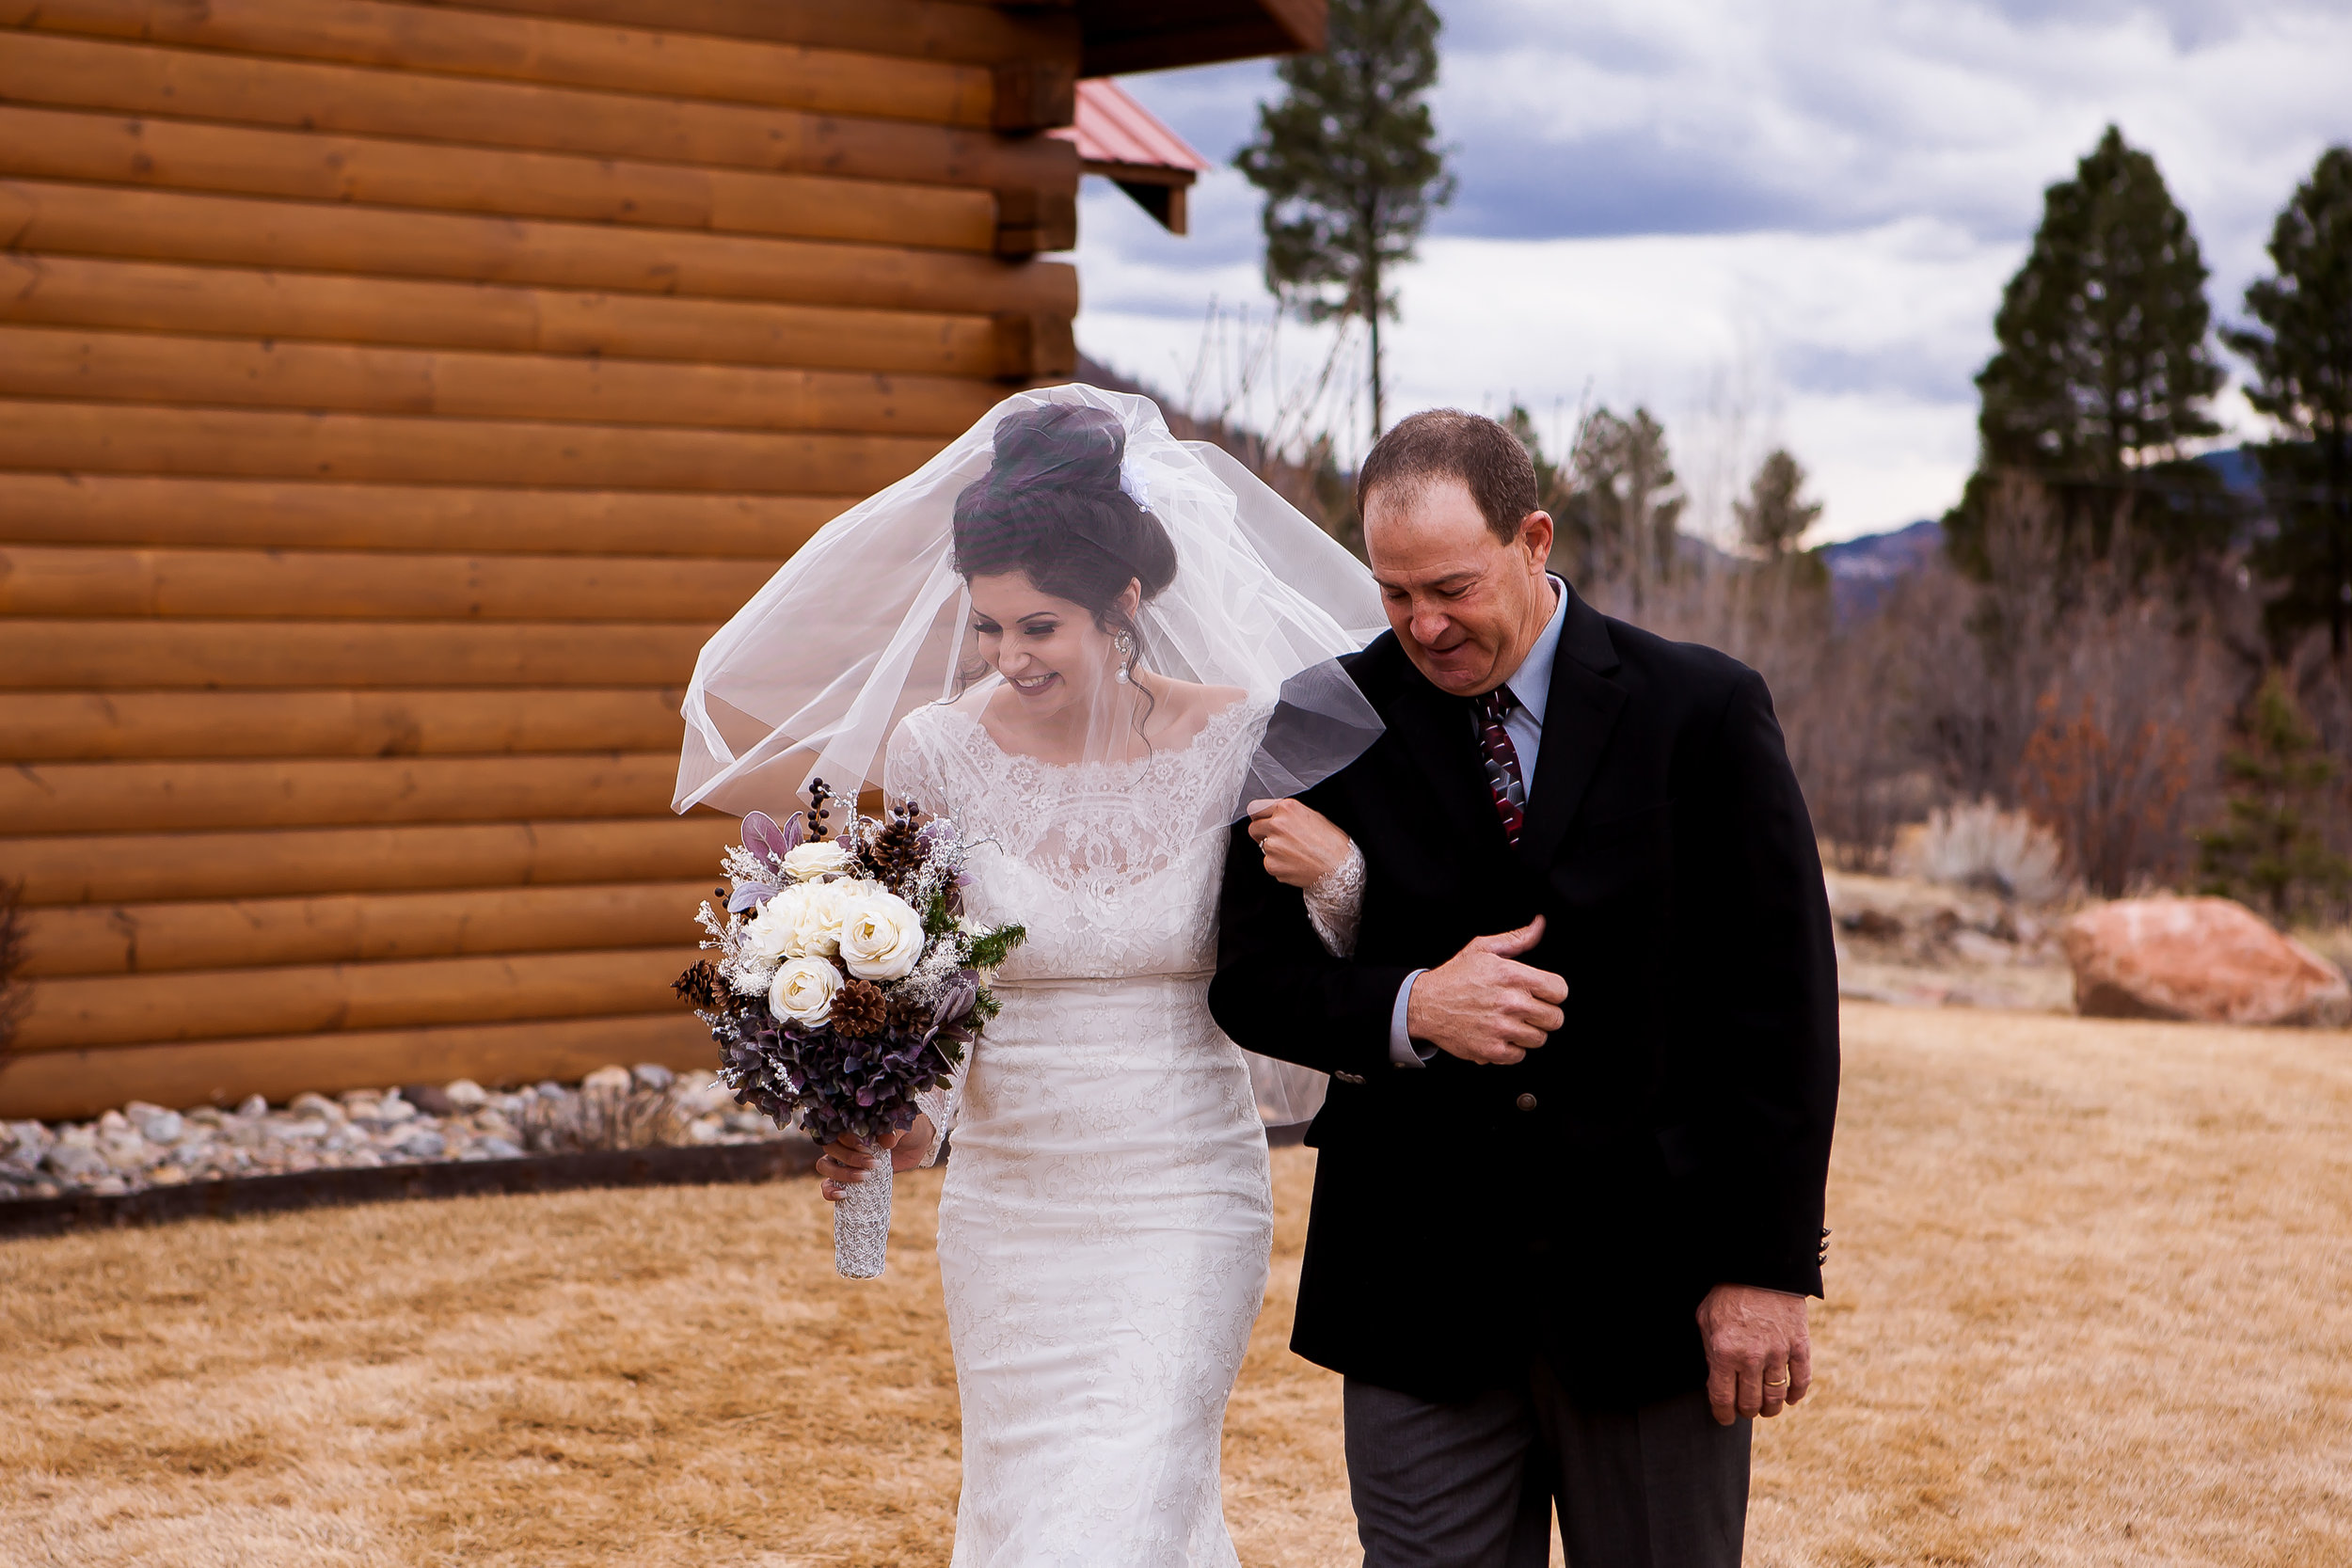 emily and justin-9964.jpg